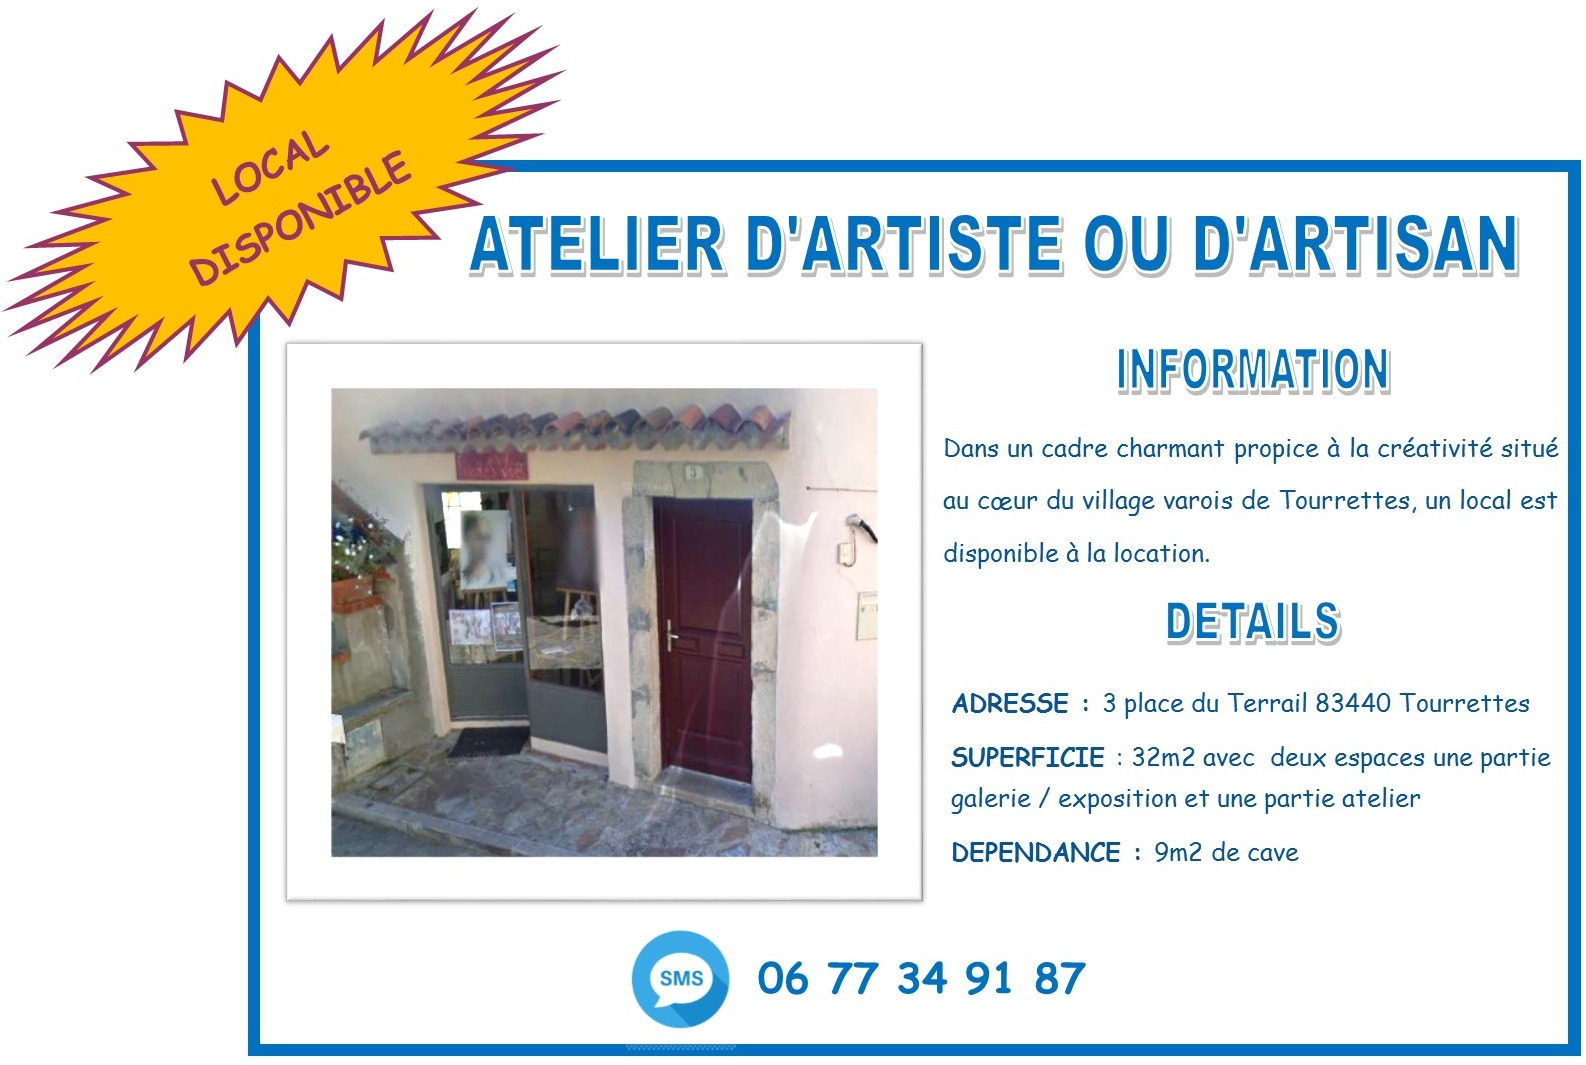 [LOCAL DISPONIBLE A LA LOCATION] Atelier d'Artiste ou d'Artisan